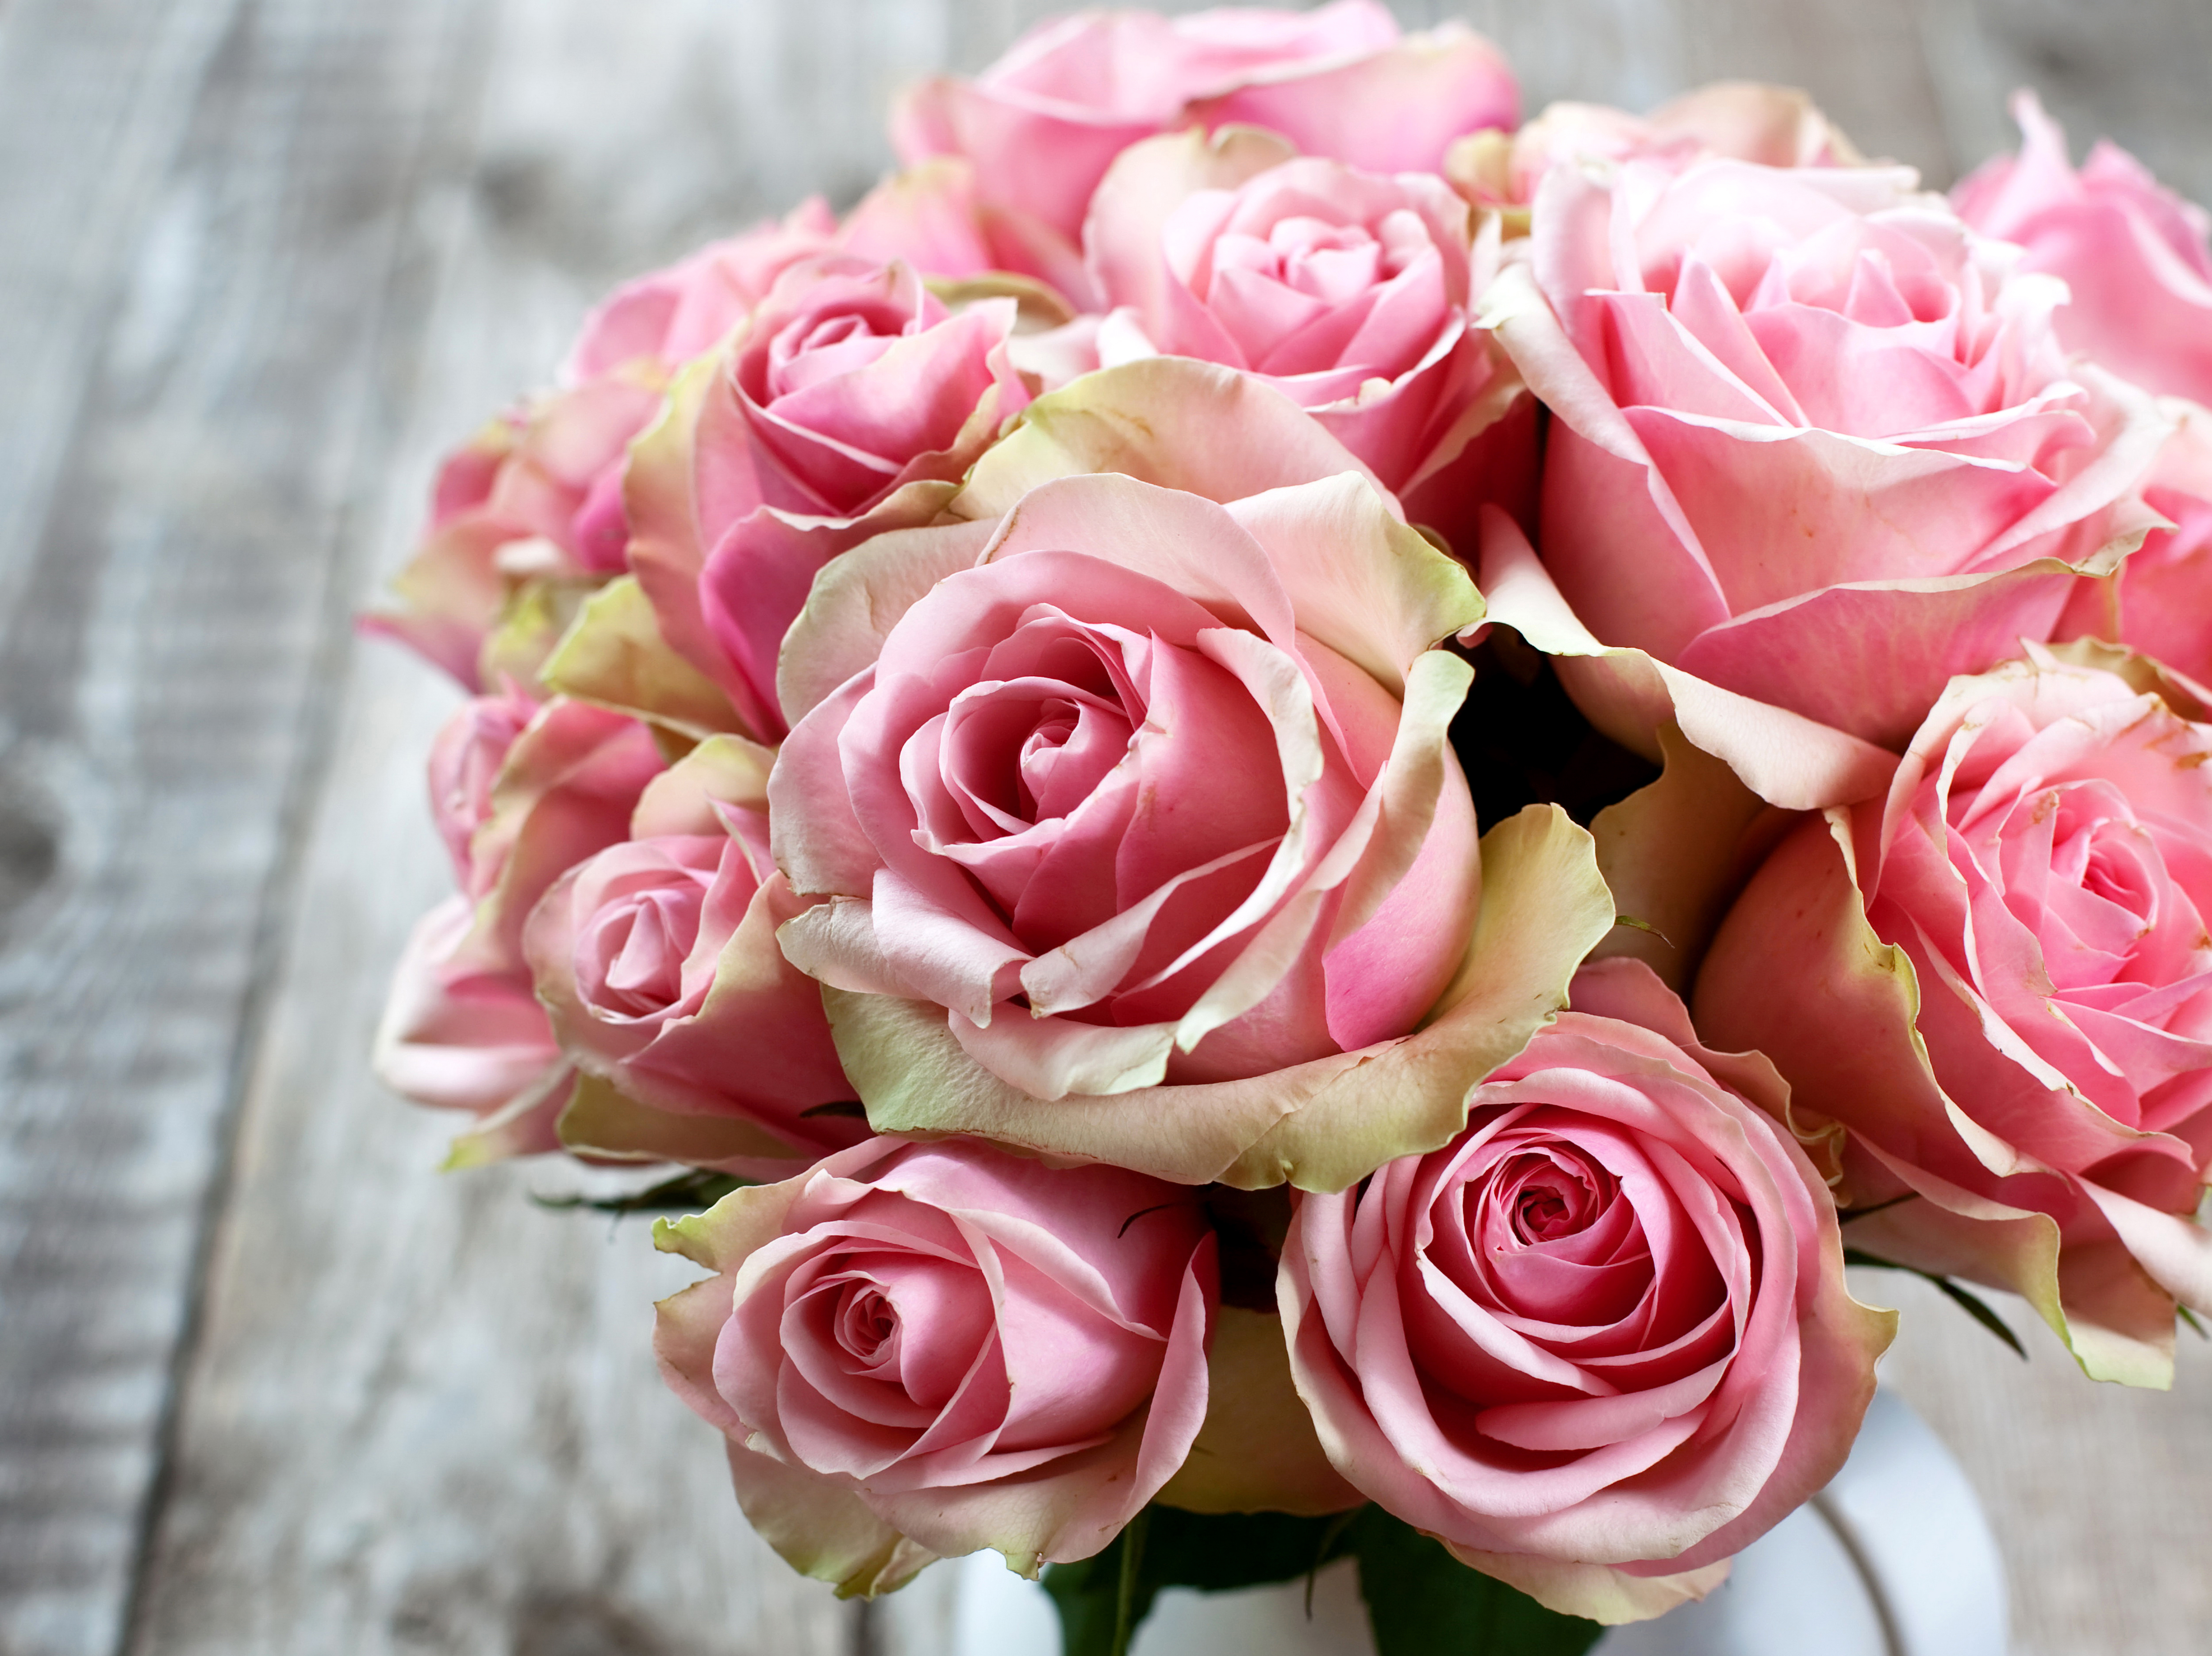 Send Roses Online Flower Delivery Buy Roses Rosefarm Pictures of pink rose bouquets